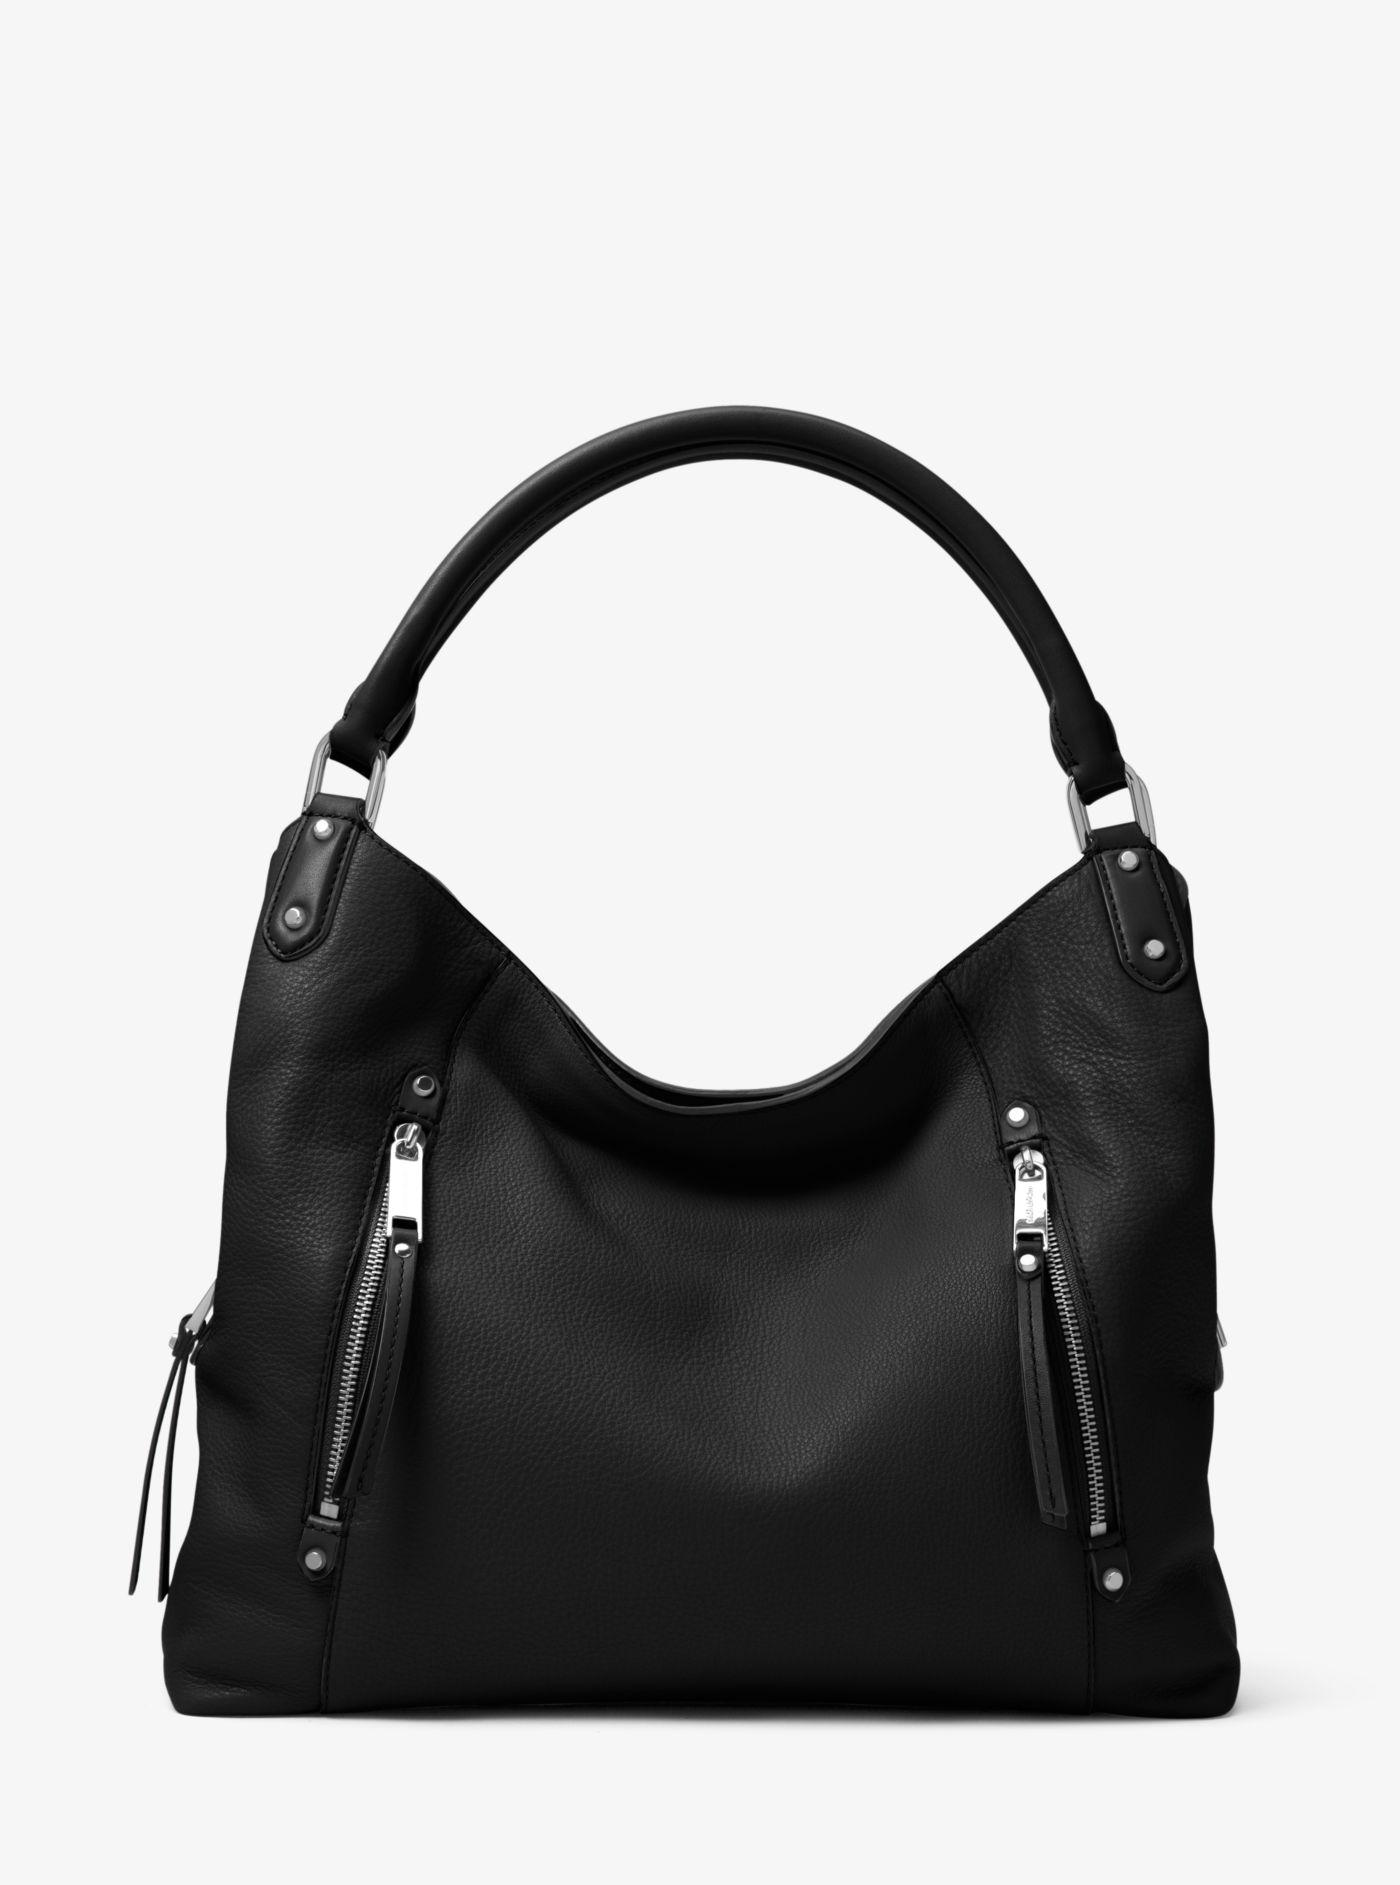 833fe6ca3e43 ... shopping lyst michael kors evie large leather shoulder bag in black  2a4ca 3ac44